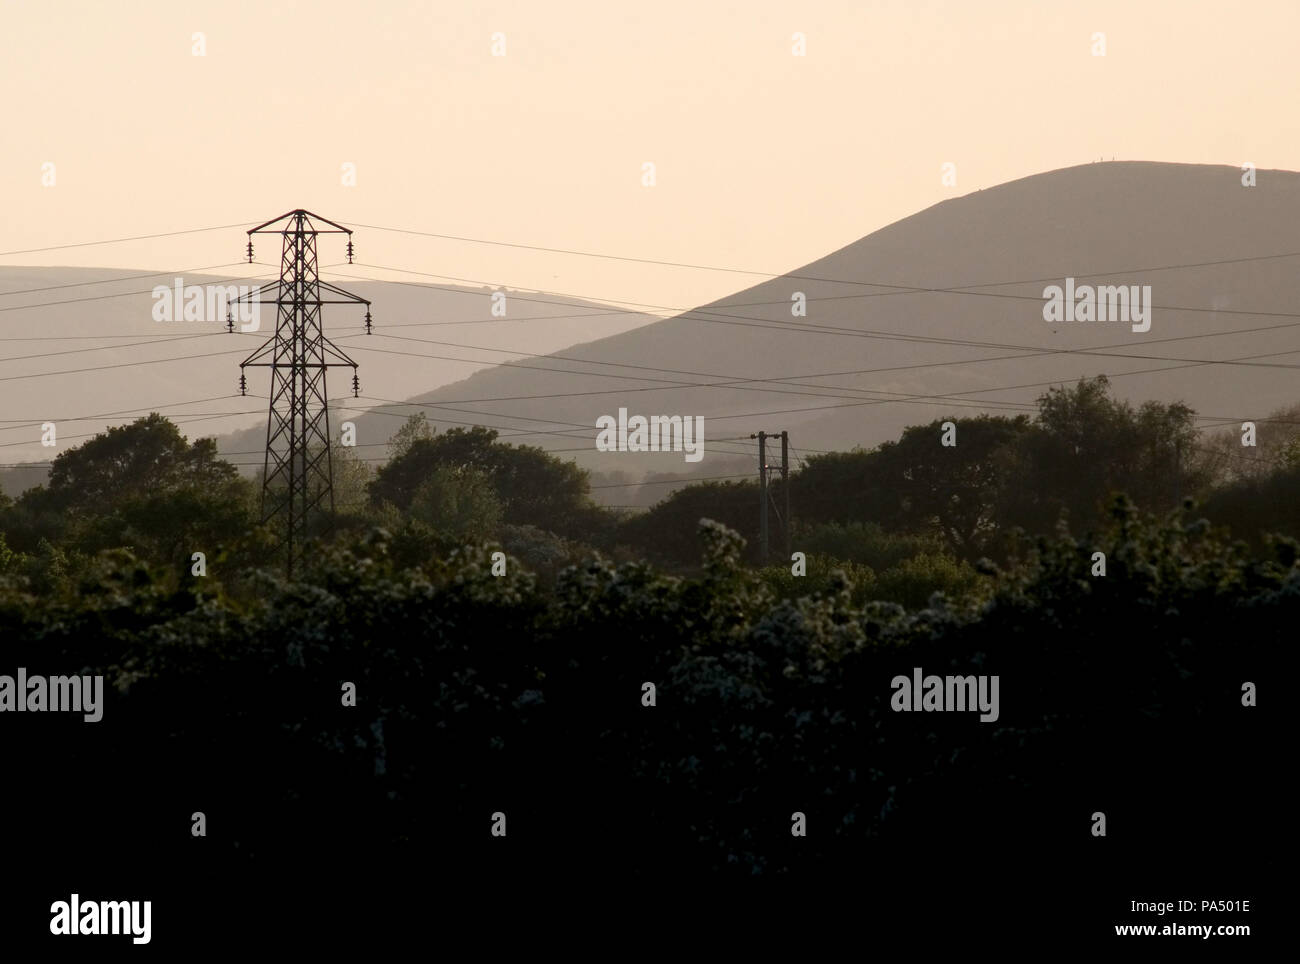 Pylons and power lines near Mount Caburn in the the South Downs National Park, UK - Stock Image